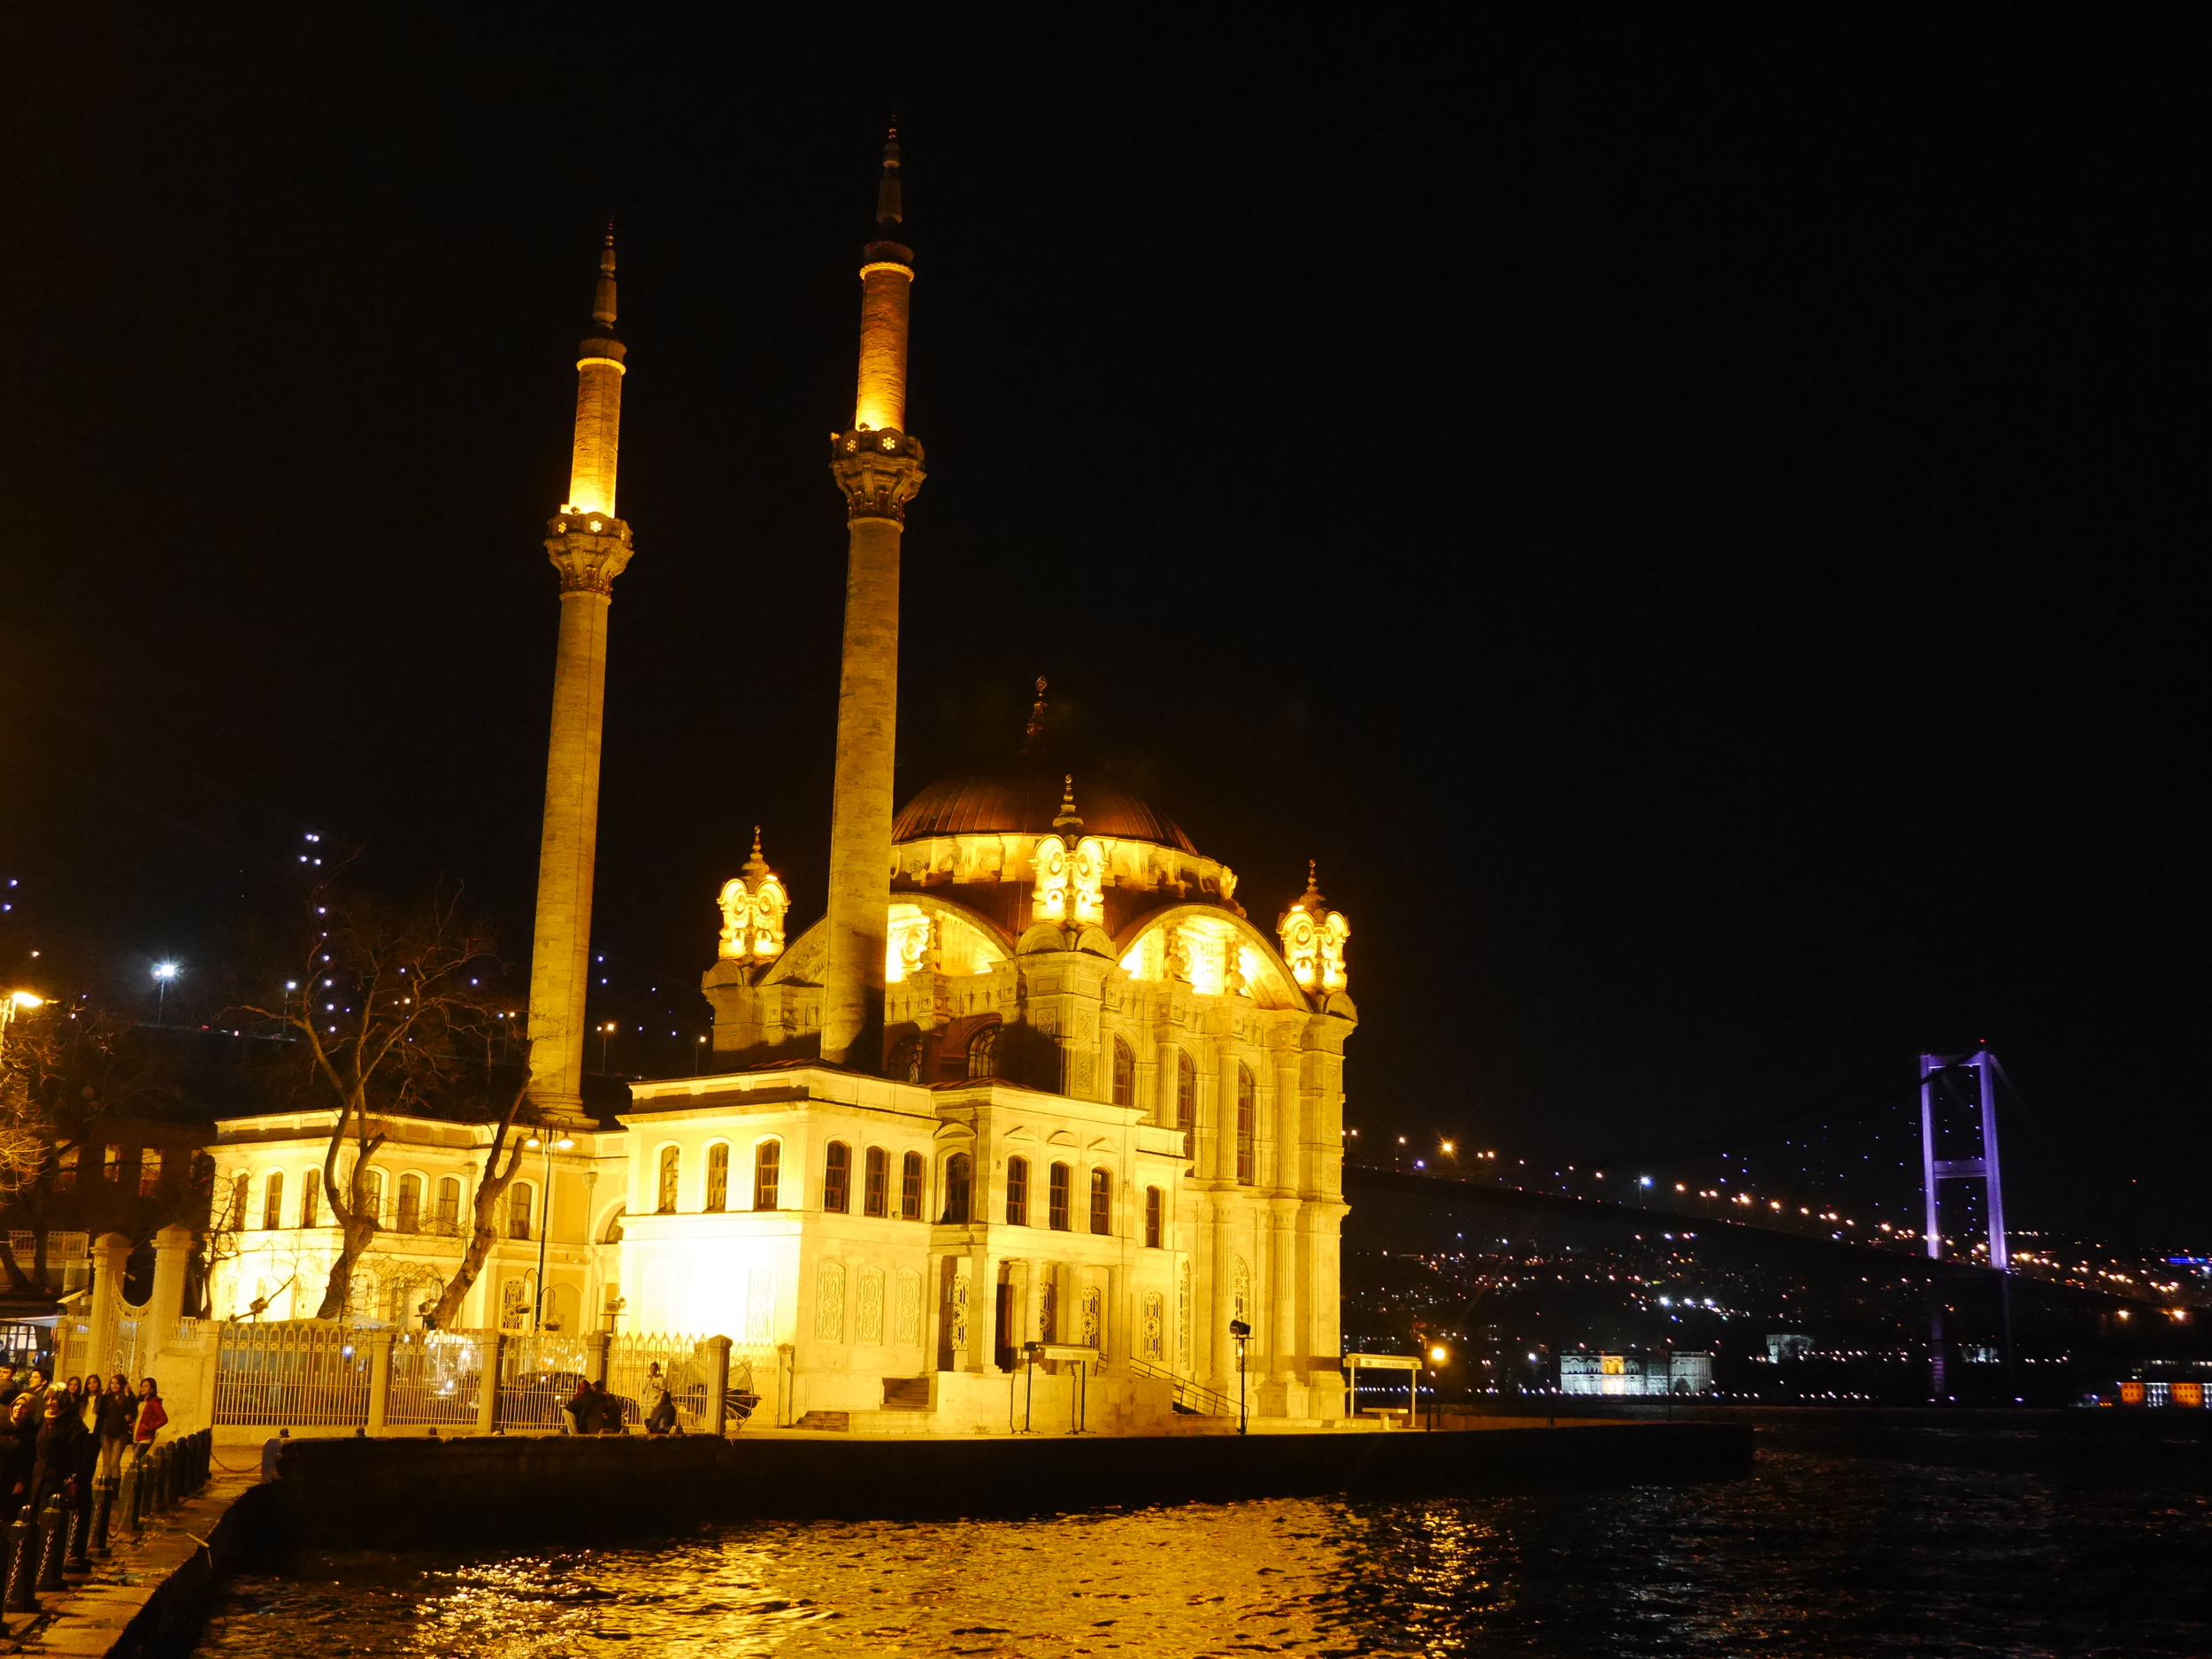 Another view of the Ortakoy Mosque and Bosphorus Bridge.